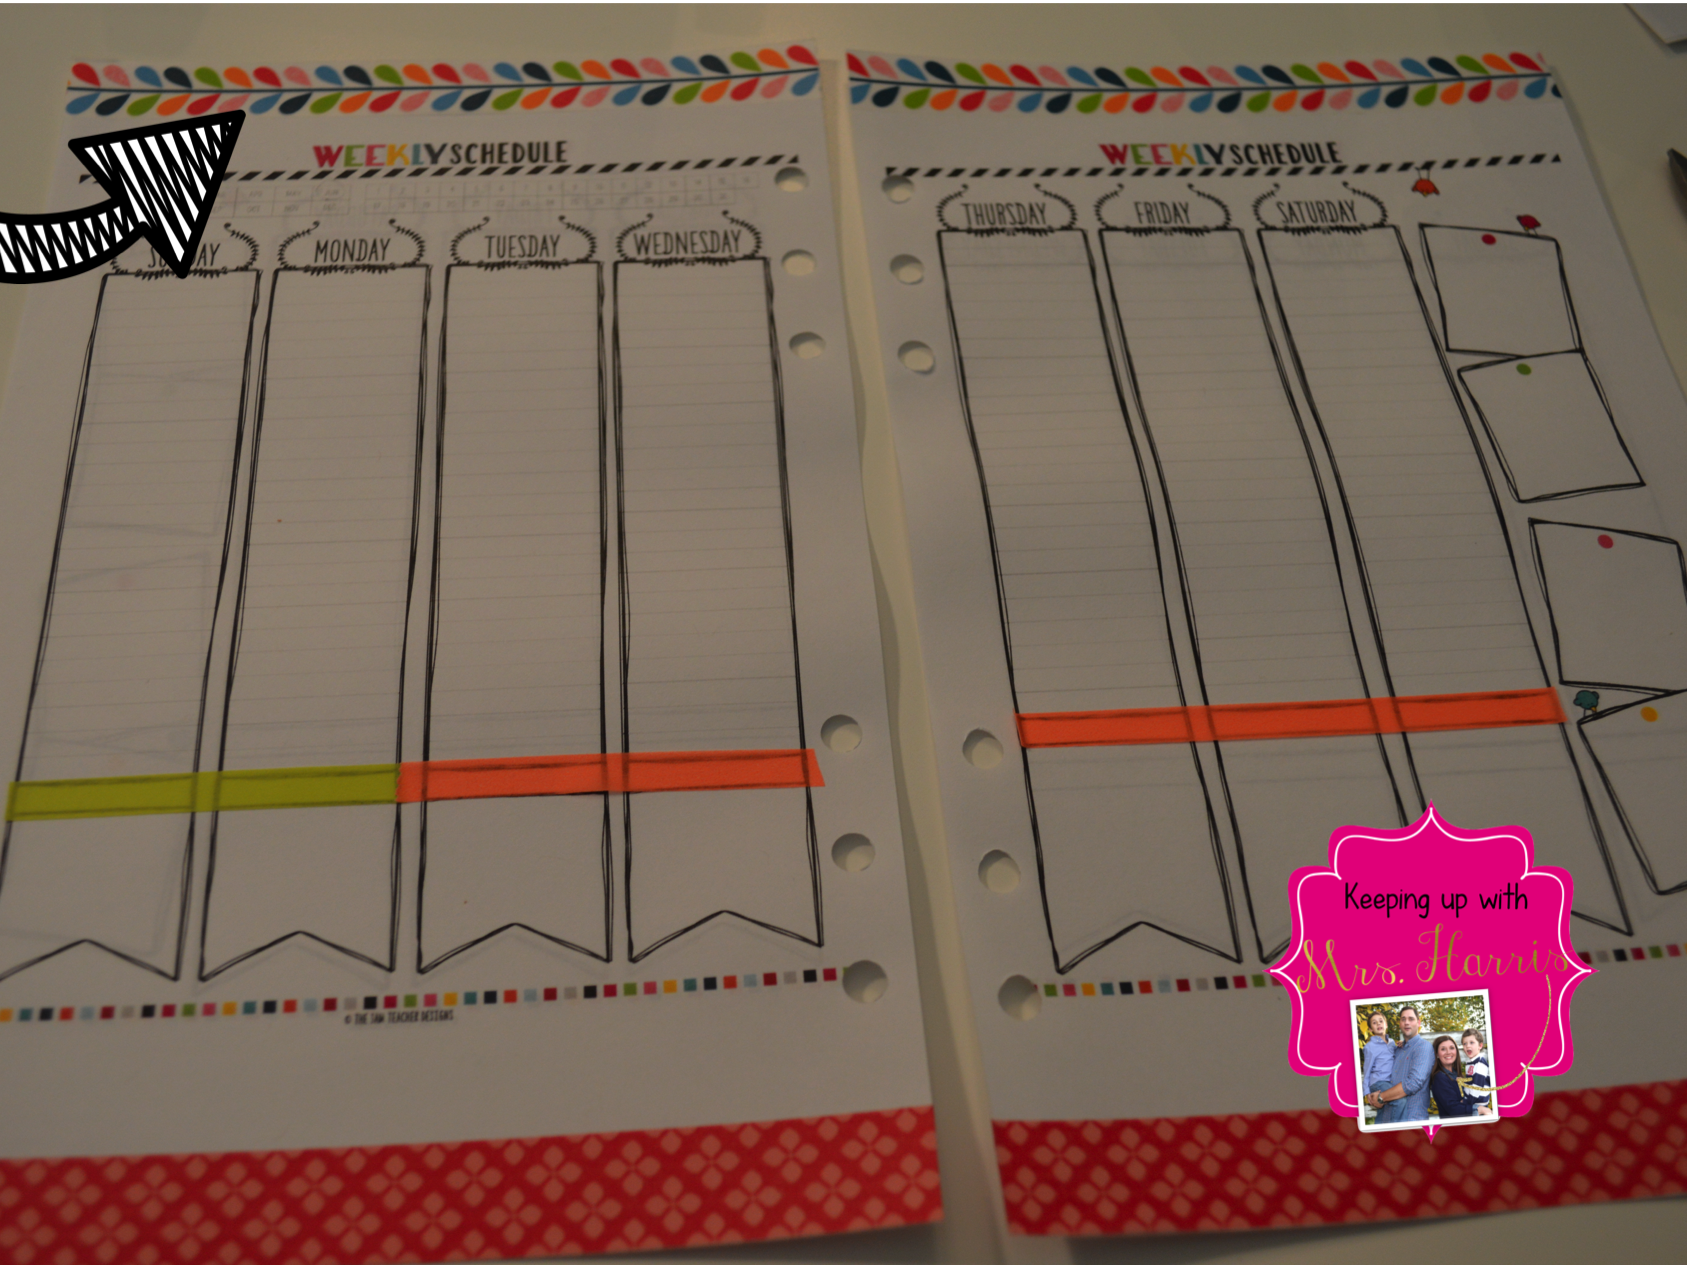 Plan with Me Sundays - Keeping Up with Mrs. Harris